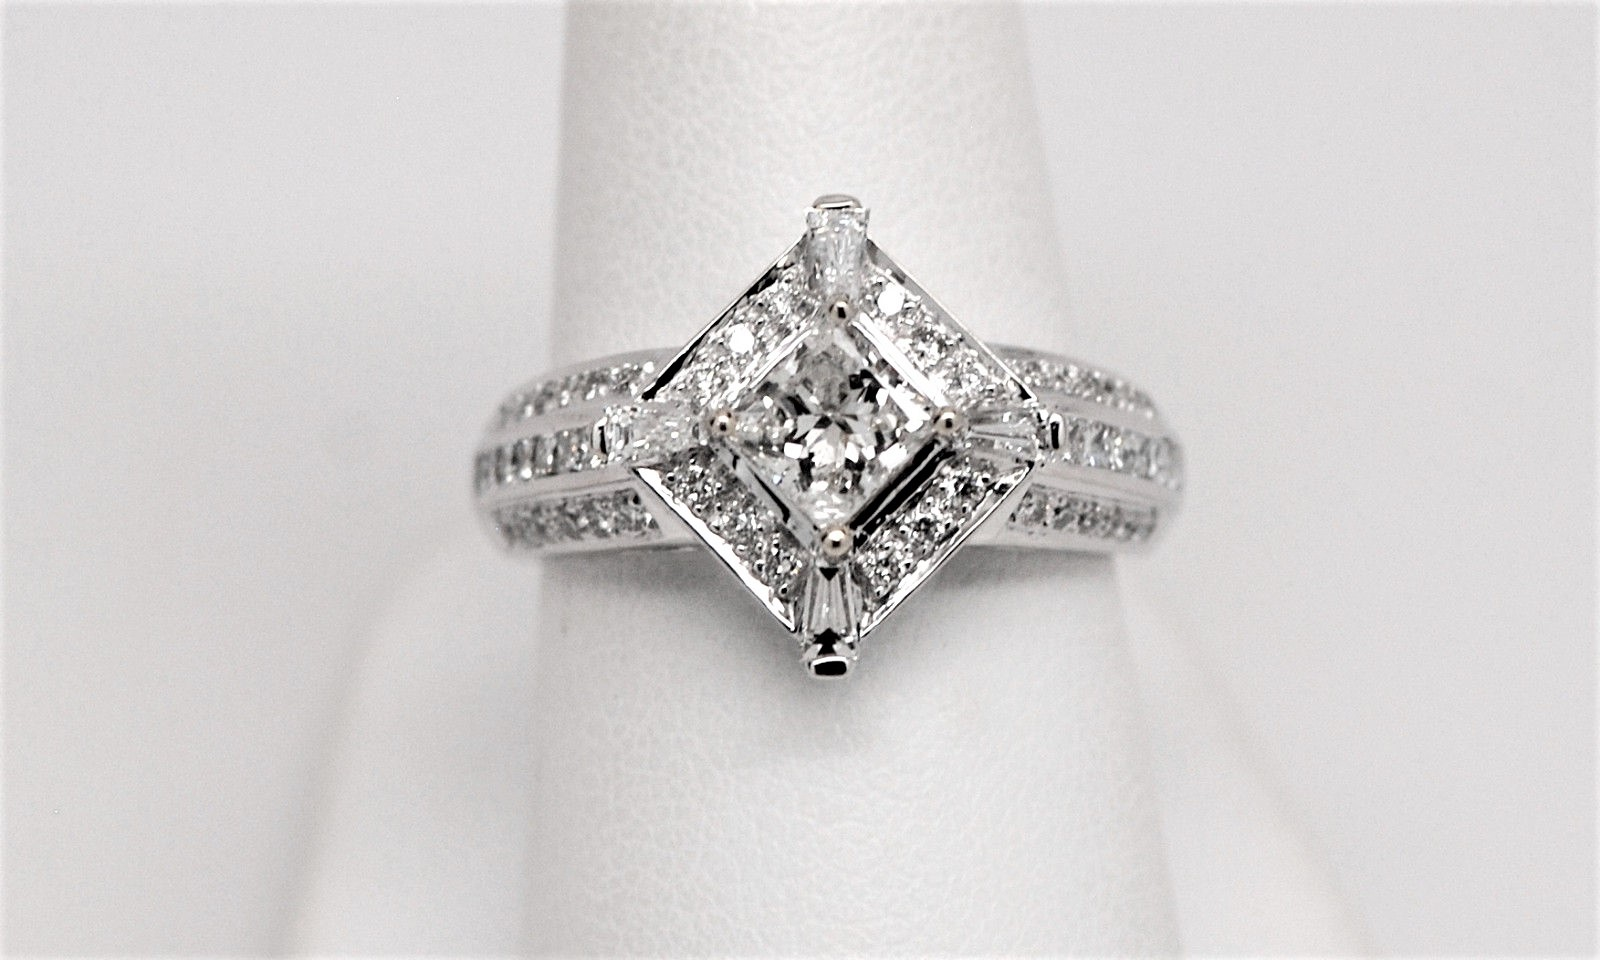 number samuel cluster h d baguette product webstore ring gold engagement diamond rings white